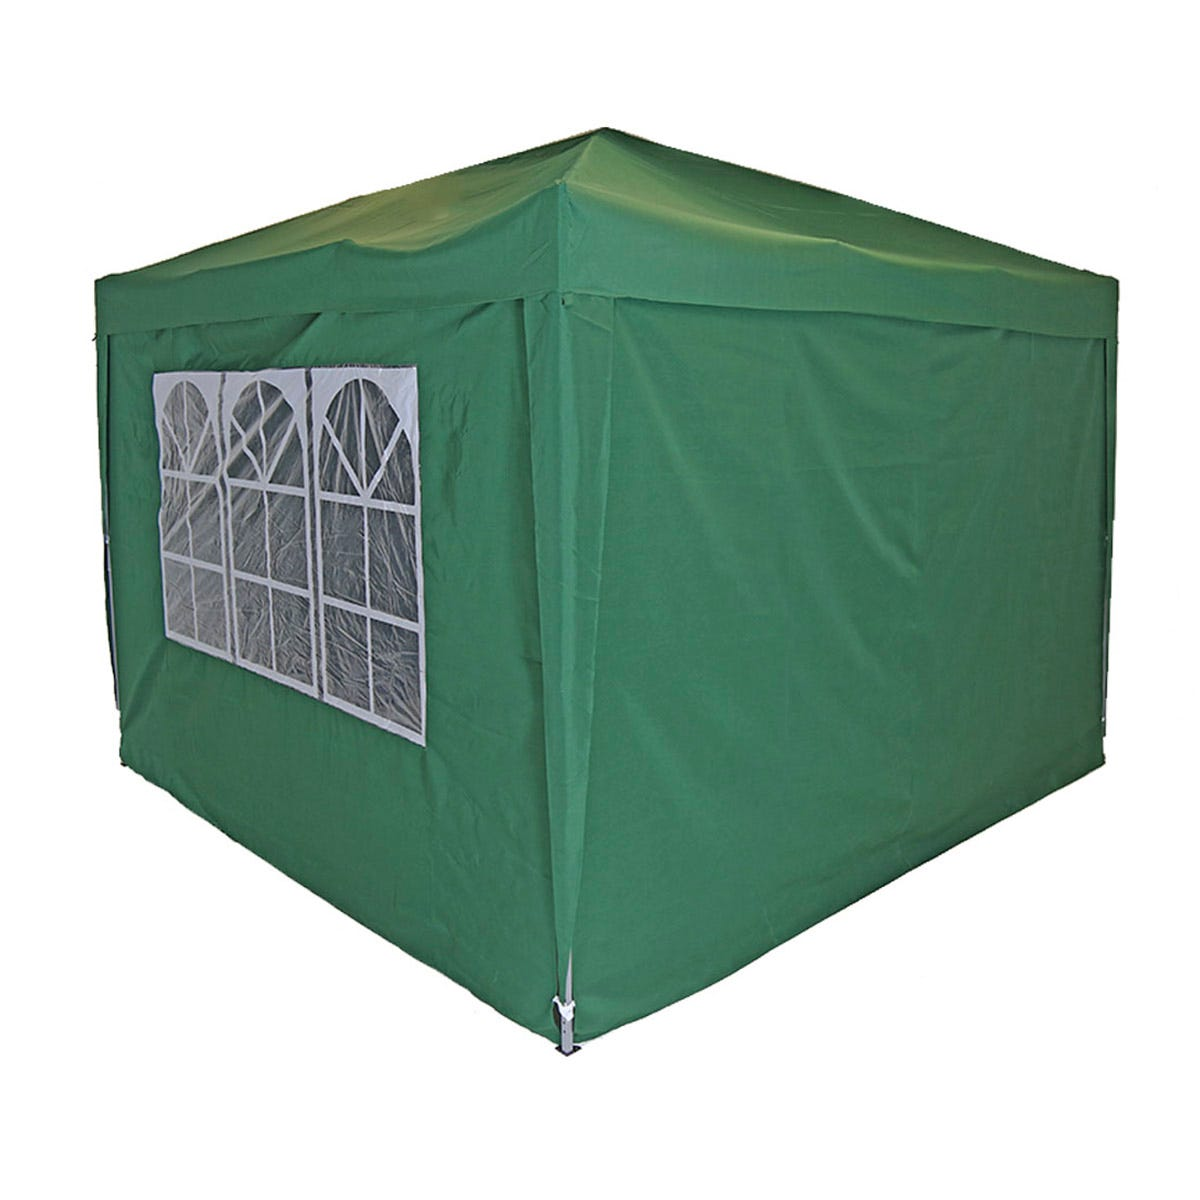 Charles Bentley 3 x 3m Pop Up Gazebo with Sides - Green